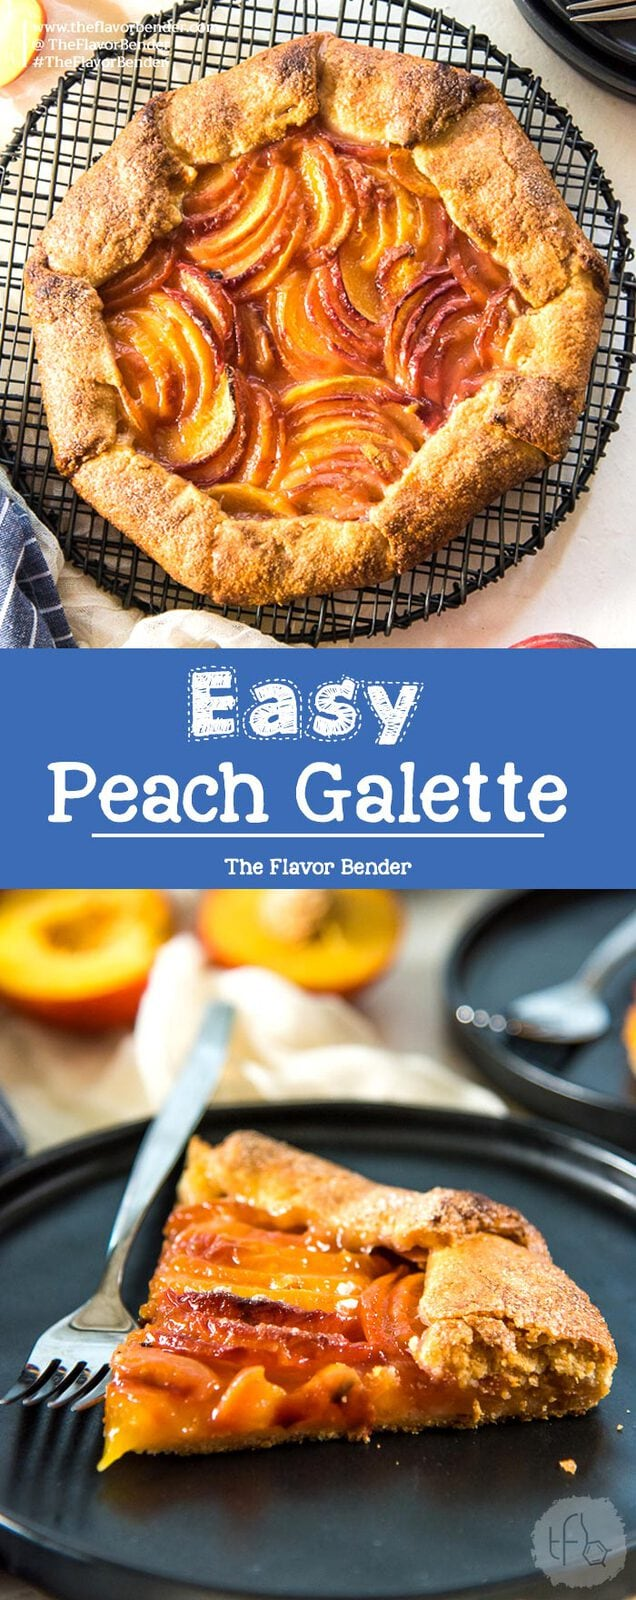 Easy Peach Galette - A delicious buttery pie crust, with a fresh, juicy peach filling! Fool proof, simple and easy summer dessert.